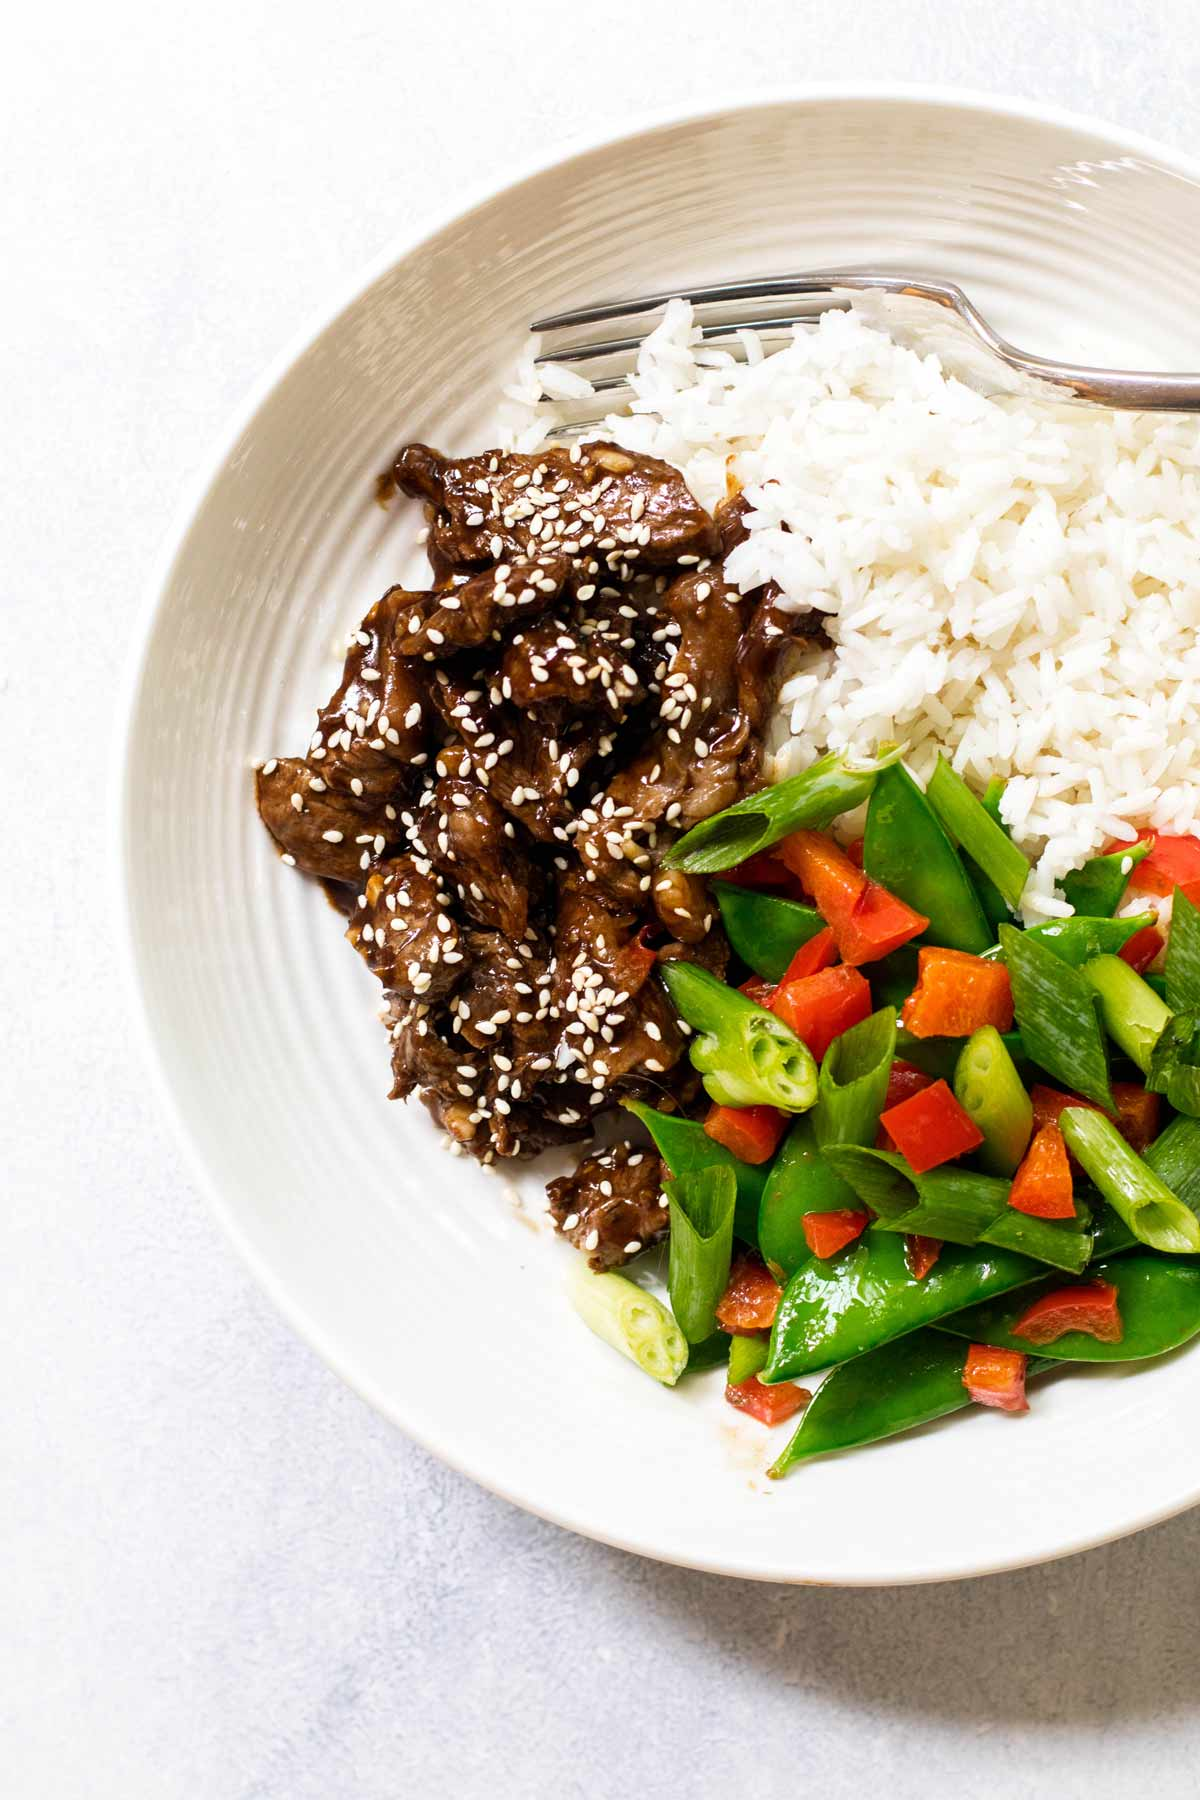 photo of a a bowl of sesame beef with rice and veggies.